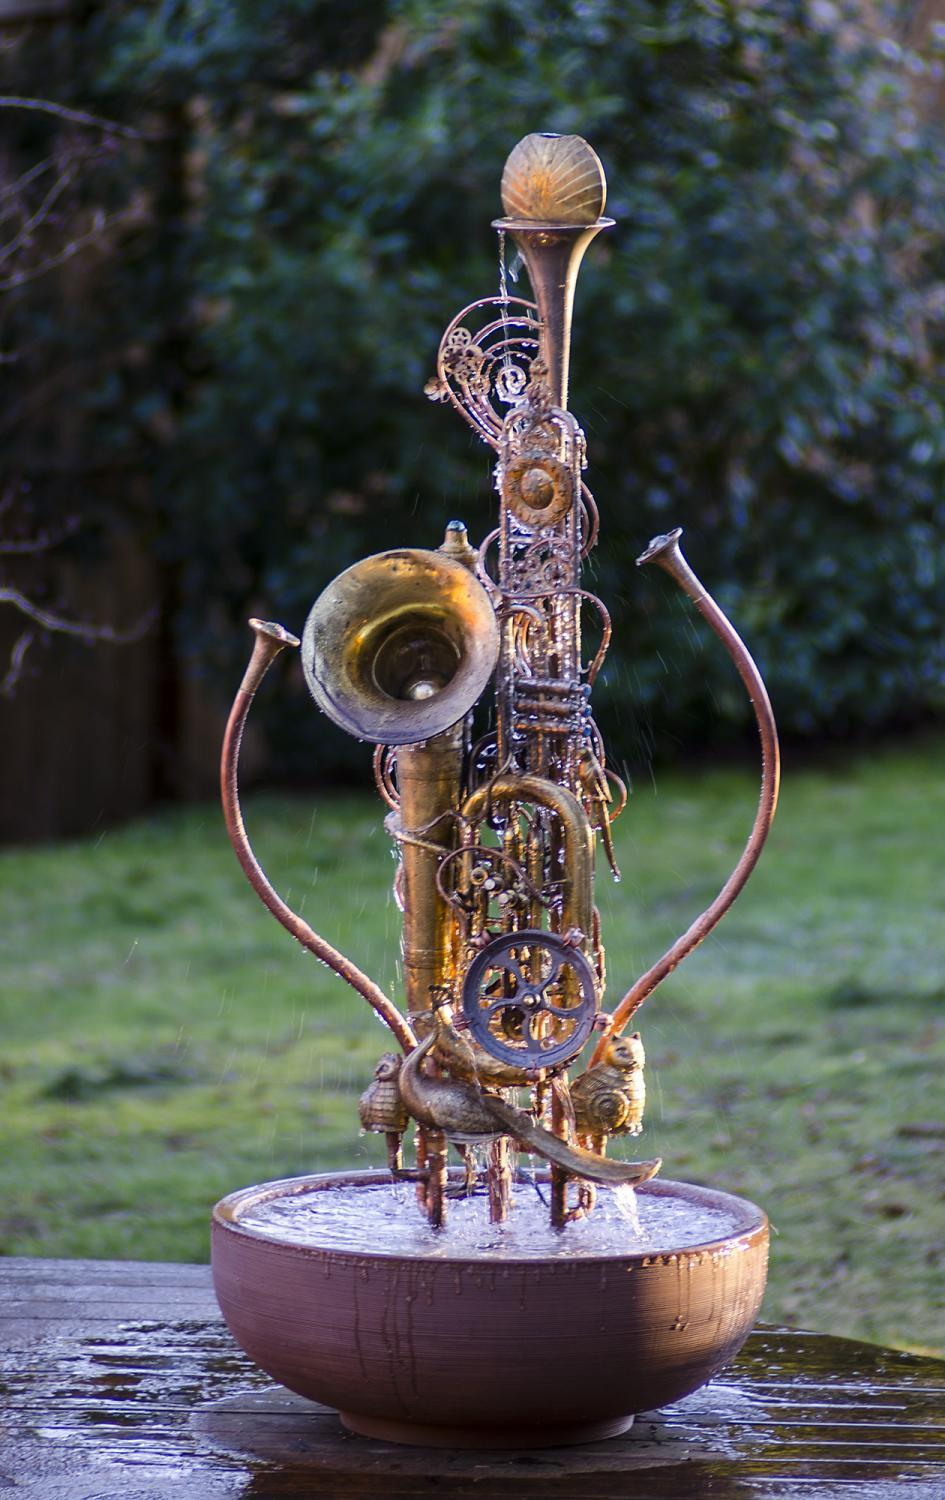 waterfeature, fountain, musical instrument sculpture